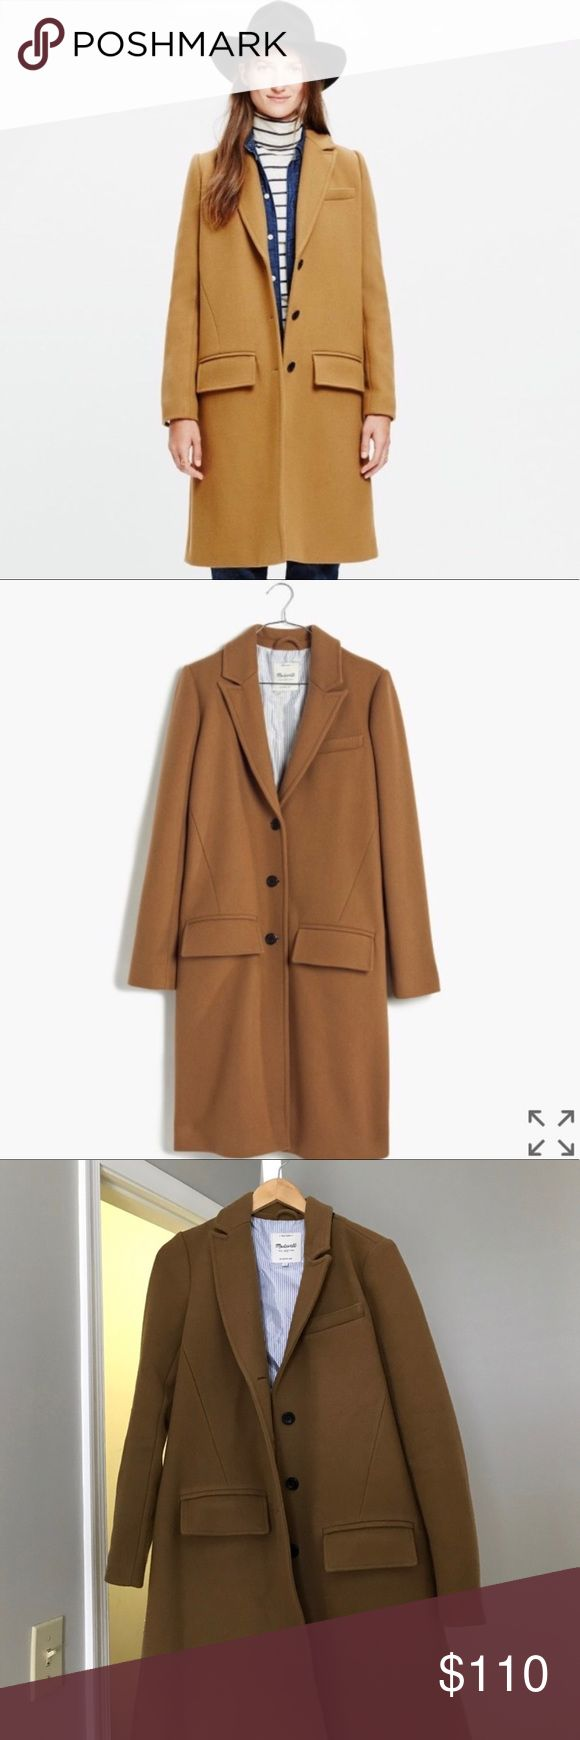 Madewell Teatro Camel Wool Coat 6 Preowned in excellent condition. Long wool swing coat. Price is firm Madewell Jackets & Coats